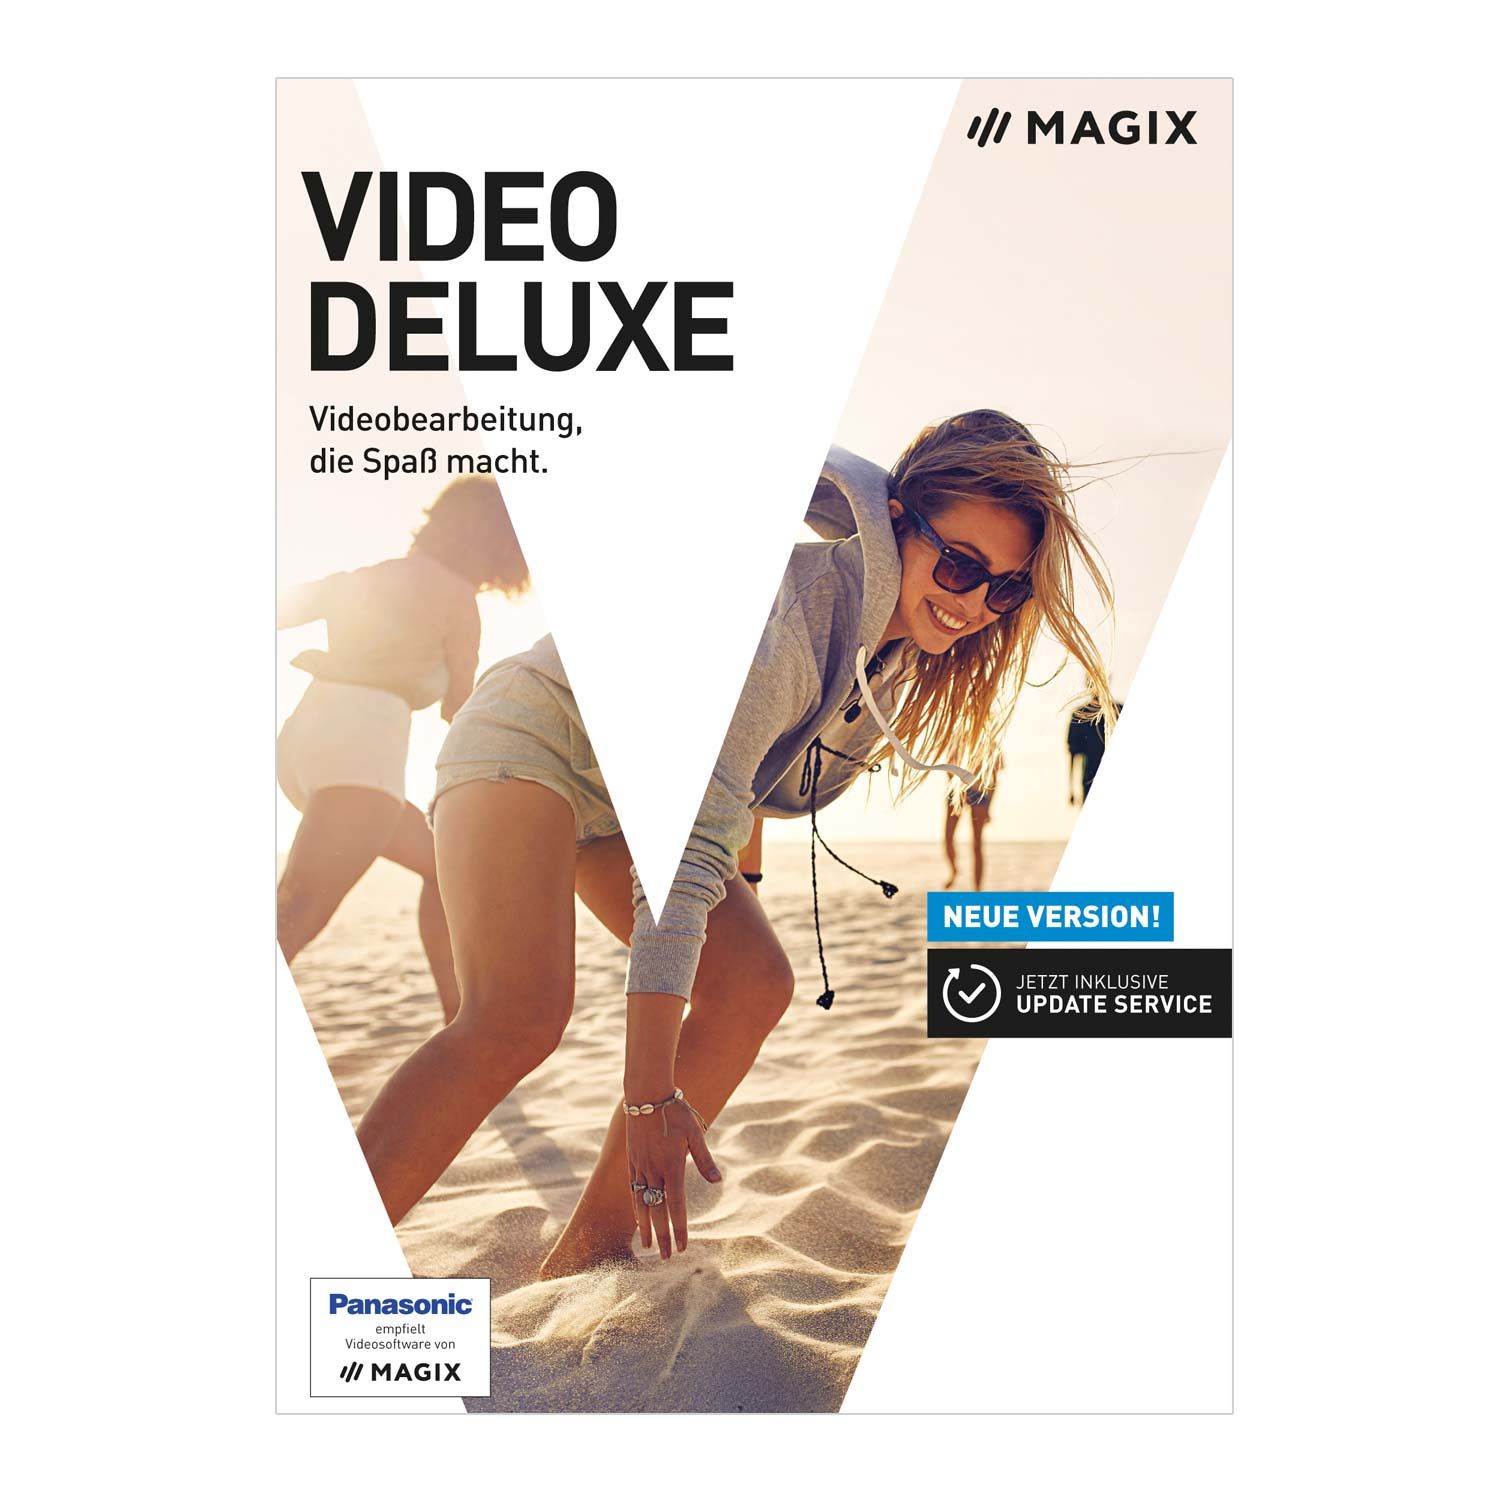 MAGIX Video deluxe [PC]